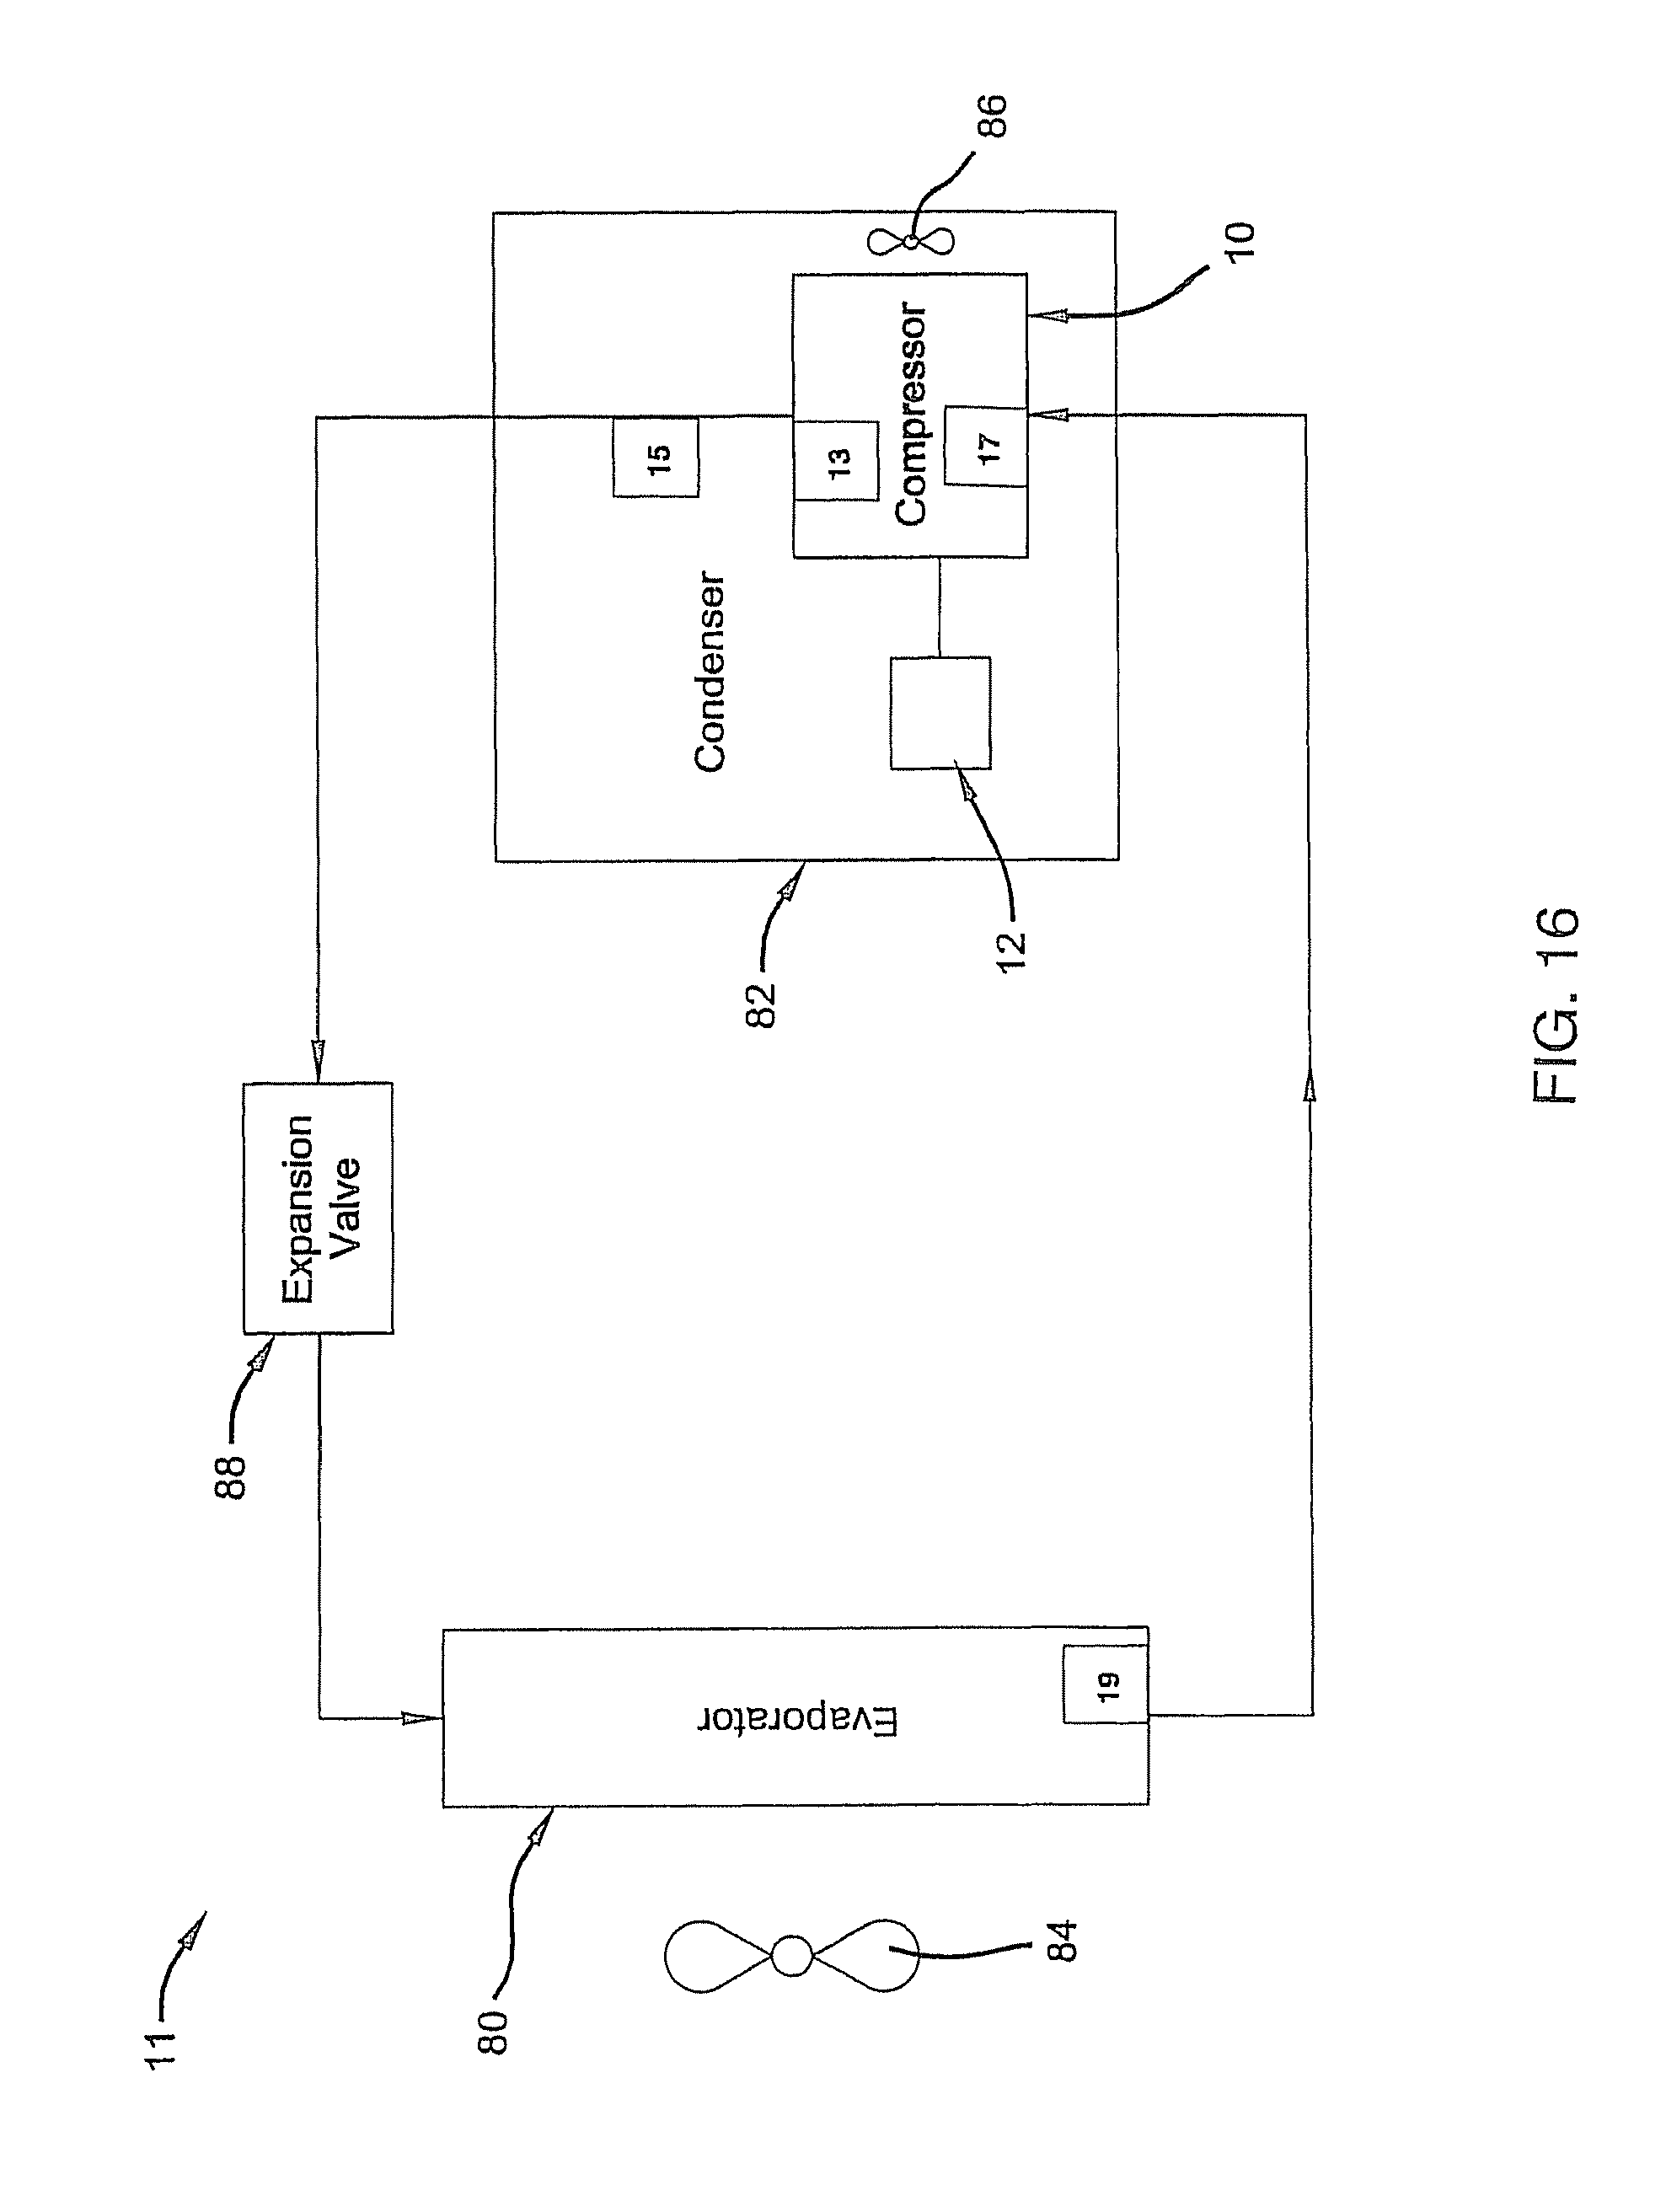 patent us 9,669,498 b2Control System For Controlling Multiple Compressors Google Patents #15